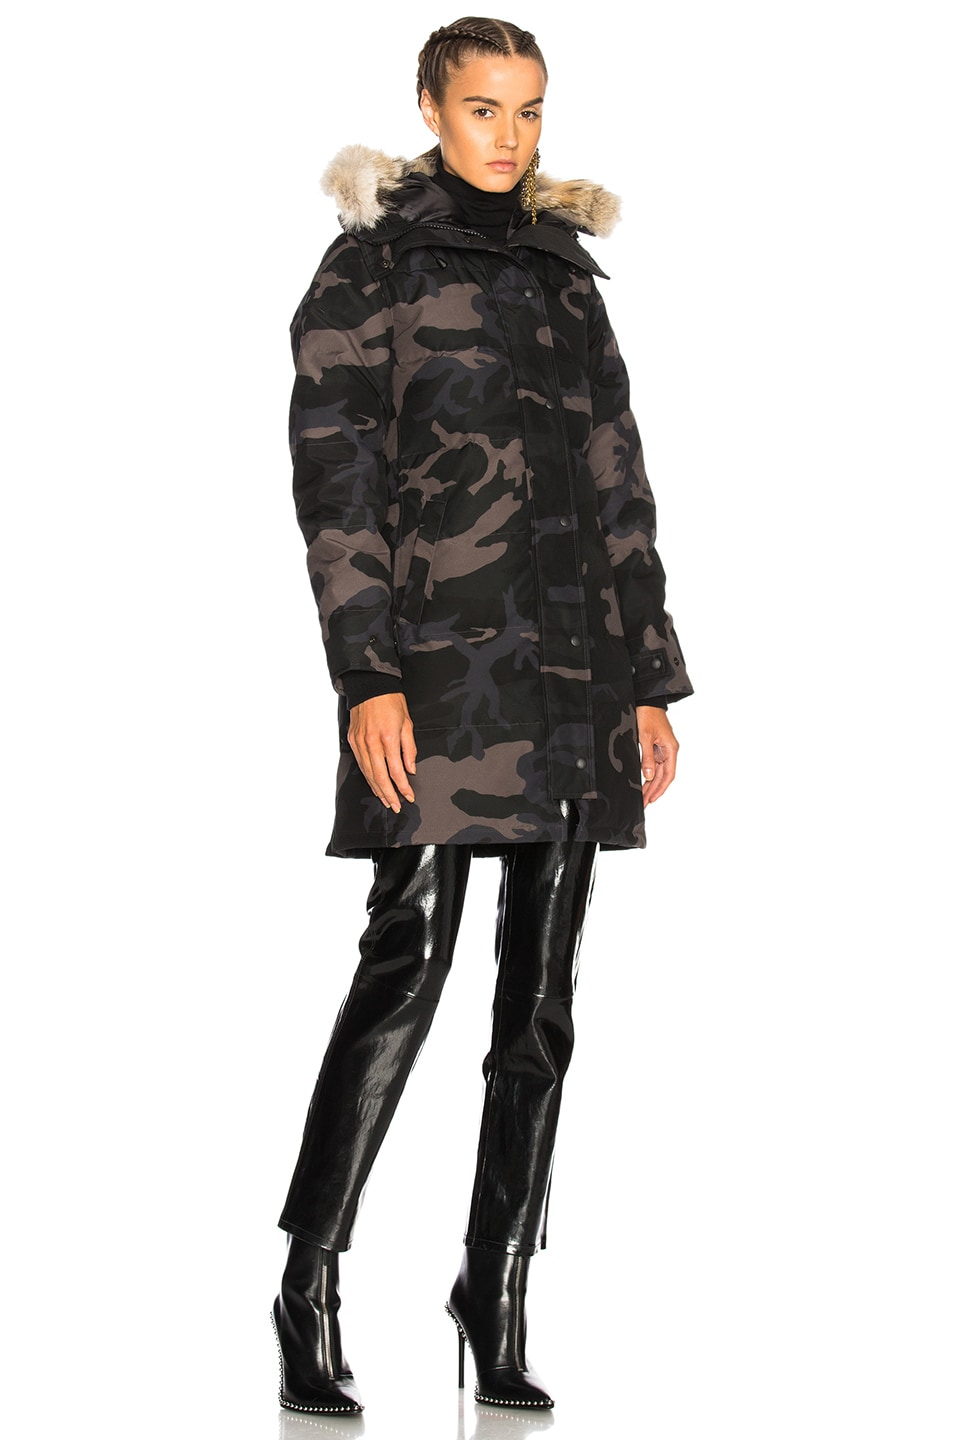 Image 2 of Canada Goose Shelburne Parka in Black Camo